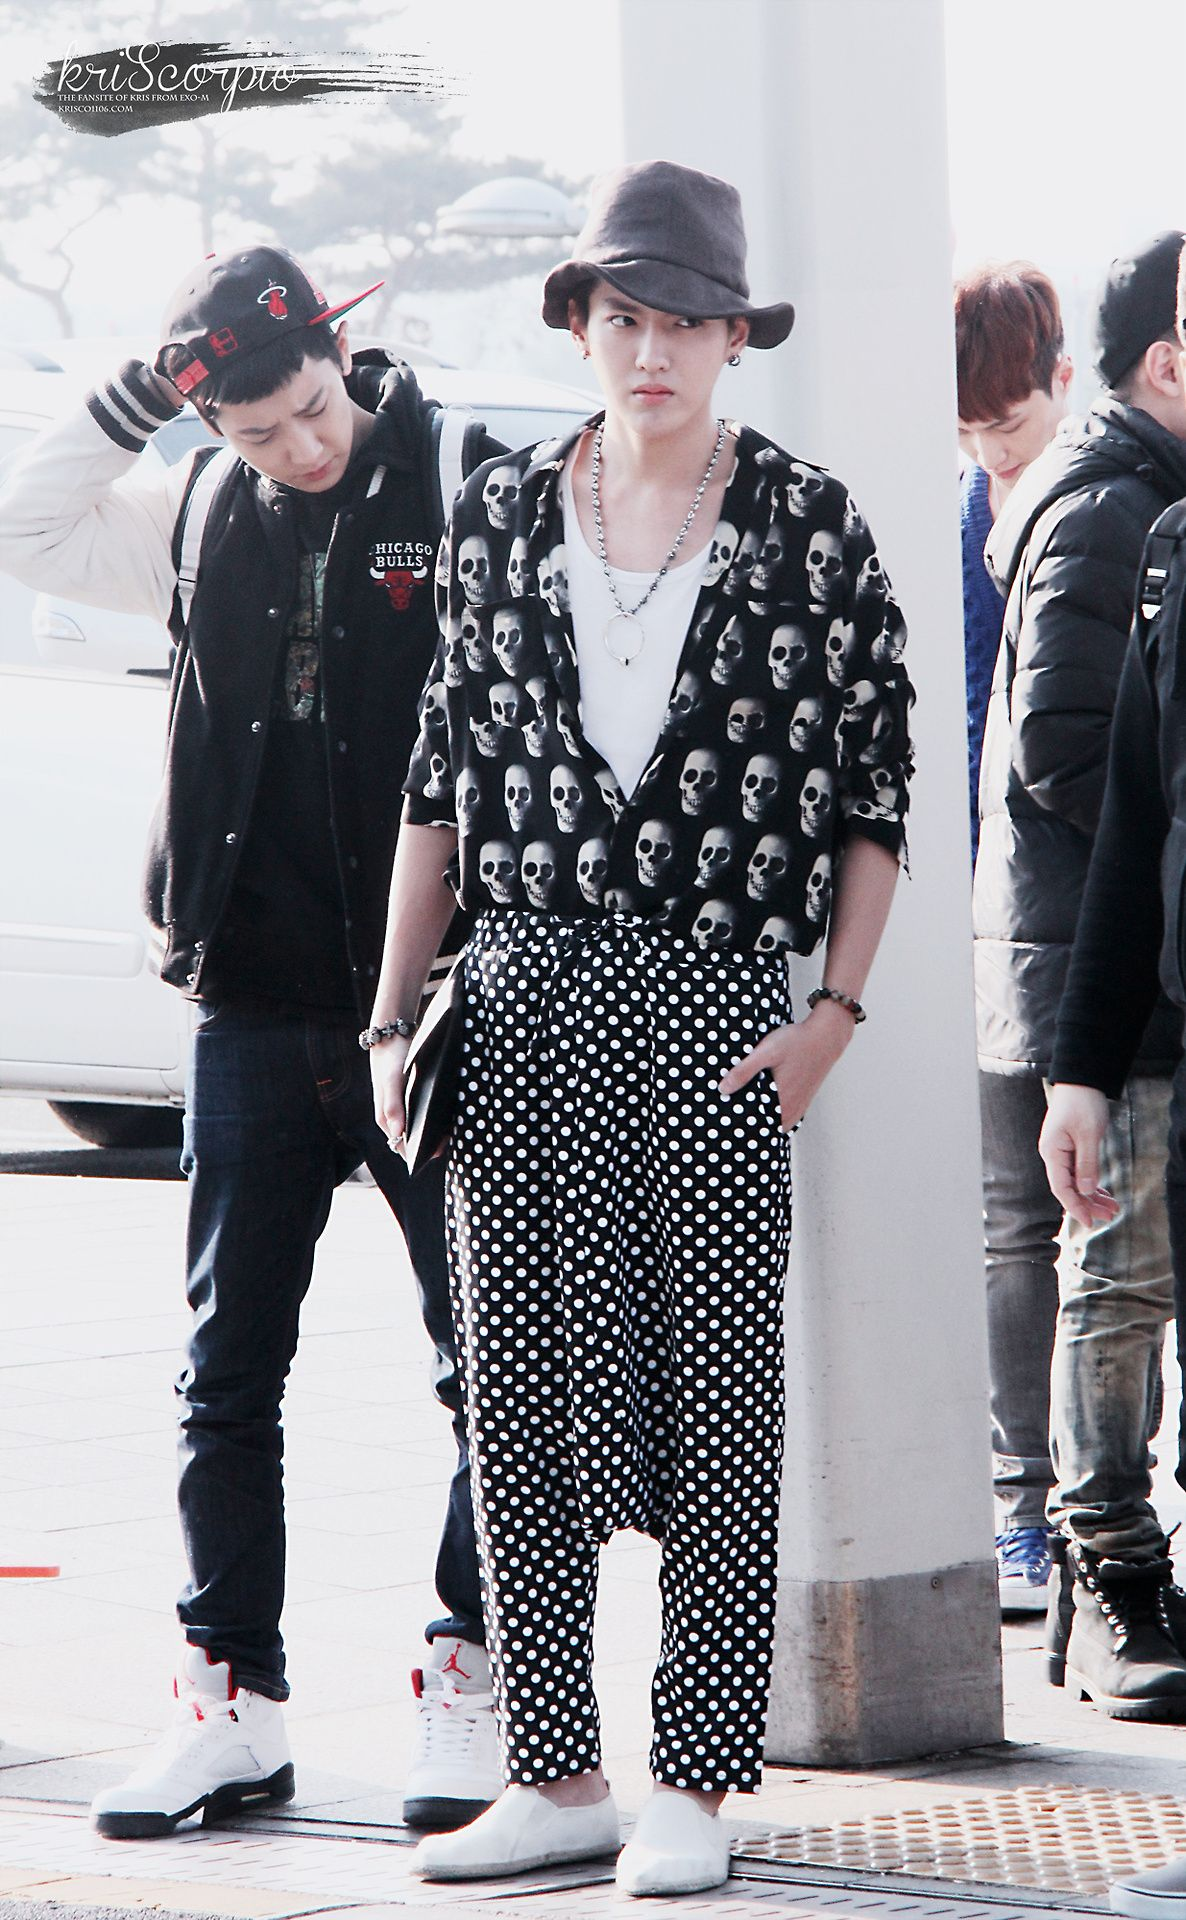 EXO's Kris traveling through Incheon/Guangzhou airport. Just pinning this because of his ridiculous outfit=P Hahah